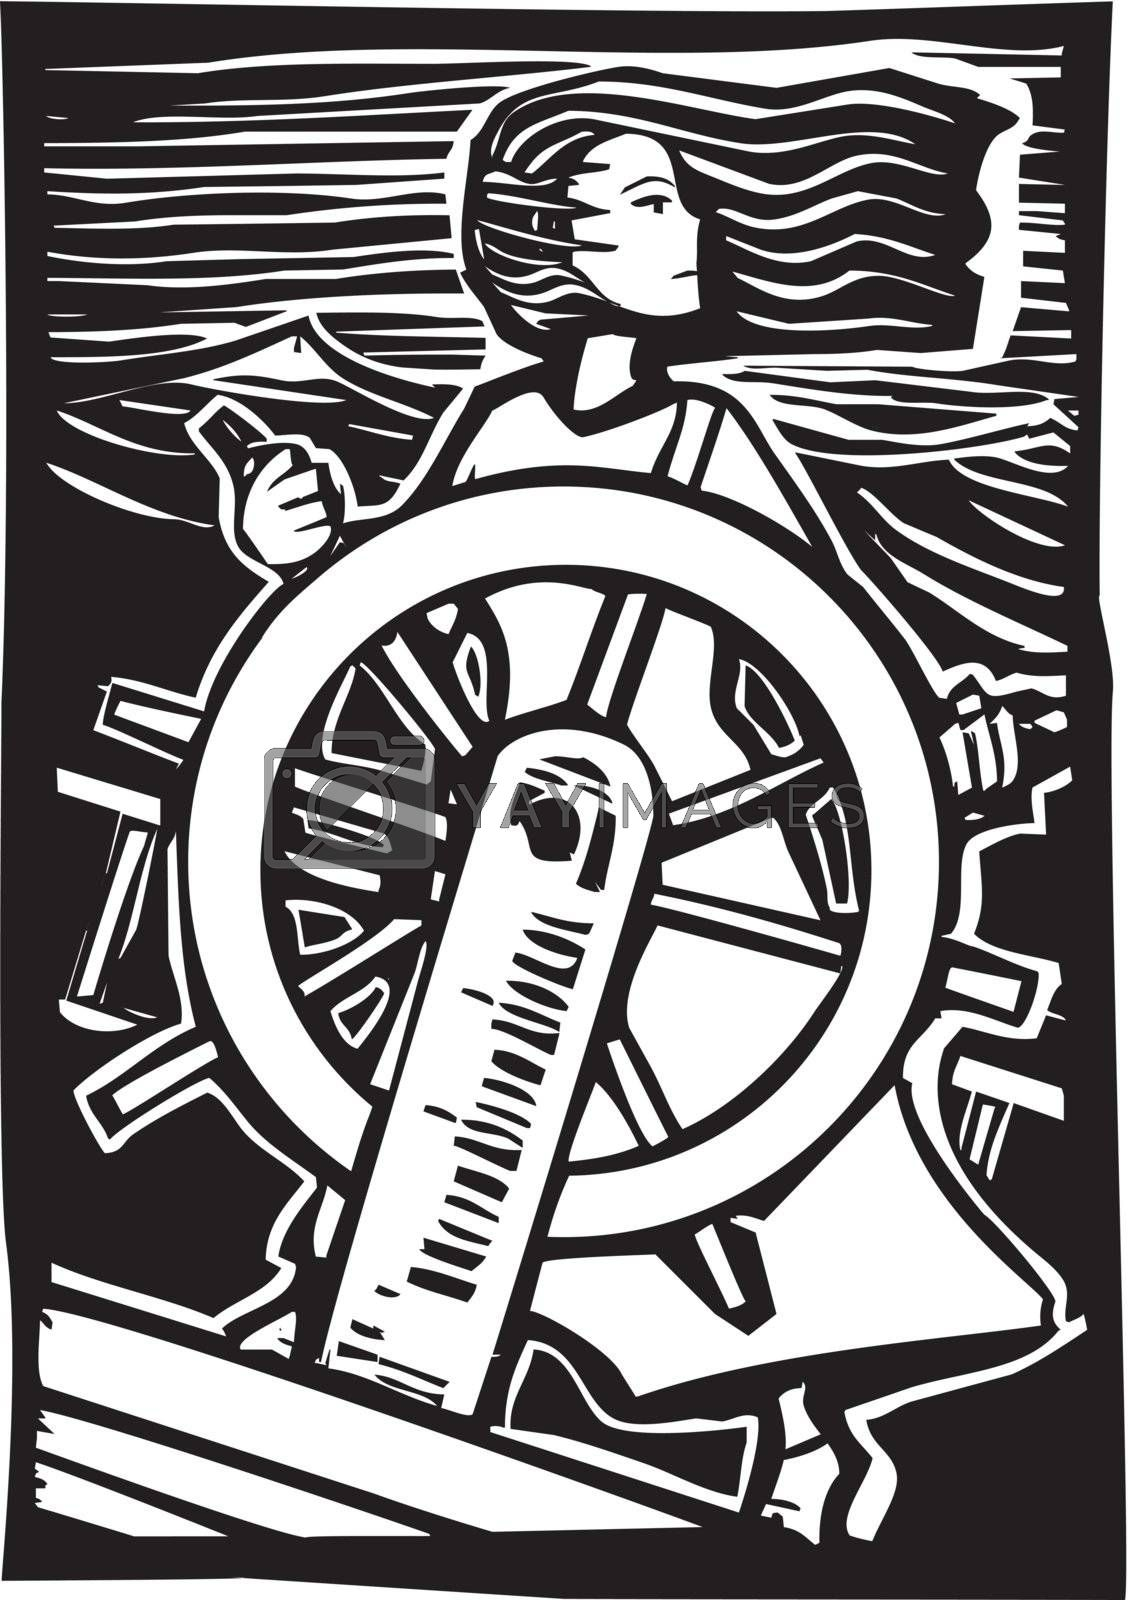 Girl in a dress pilots a ship at sea in a woodcut style image.